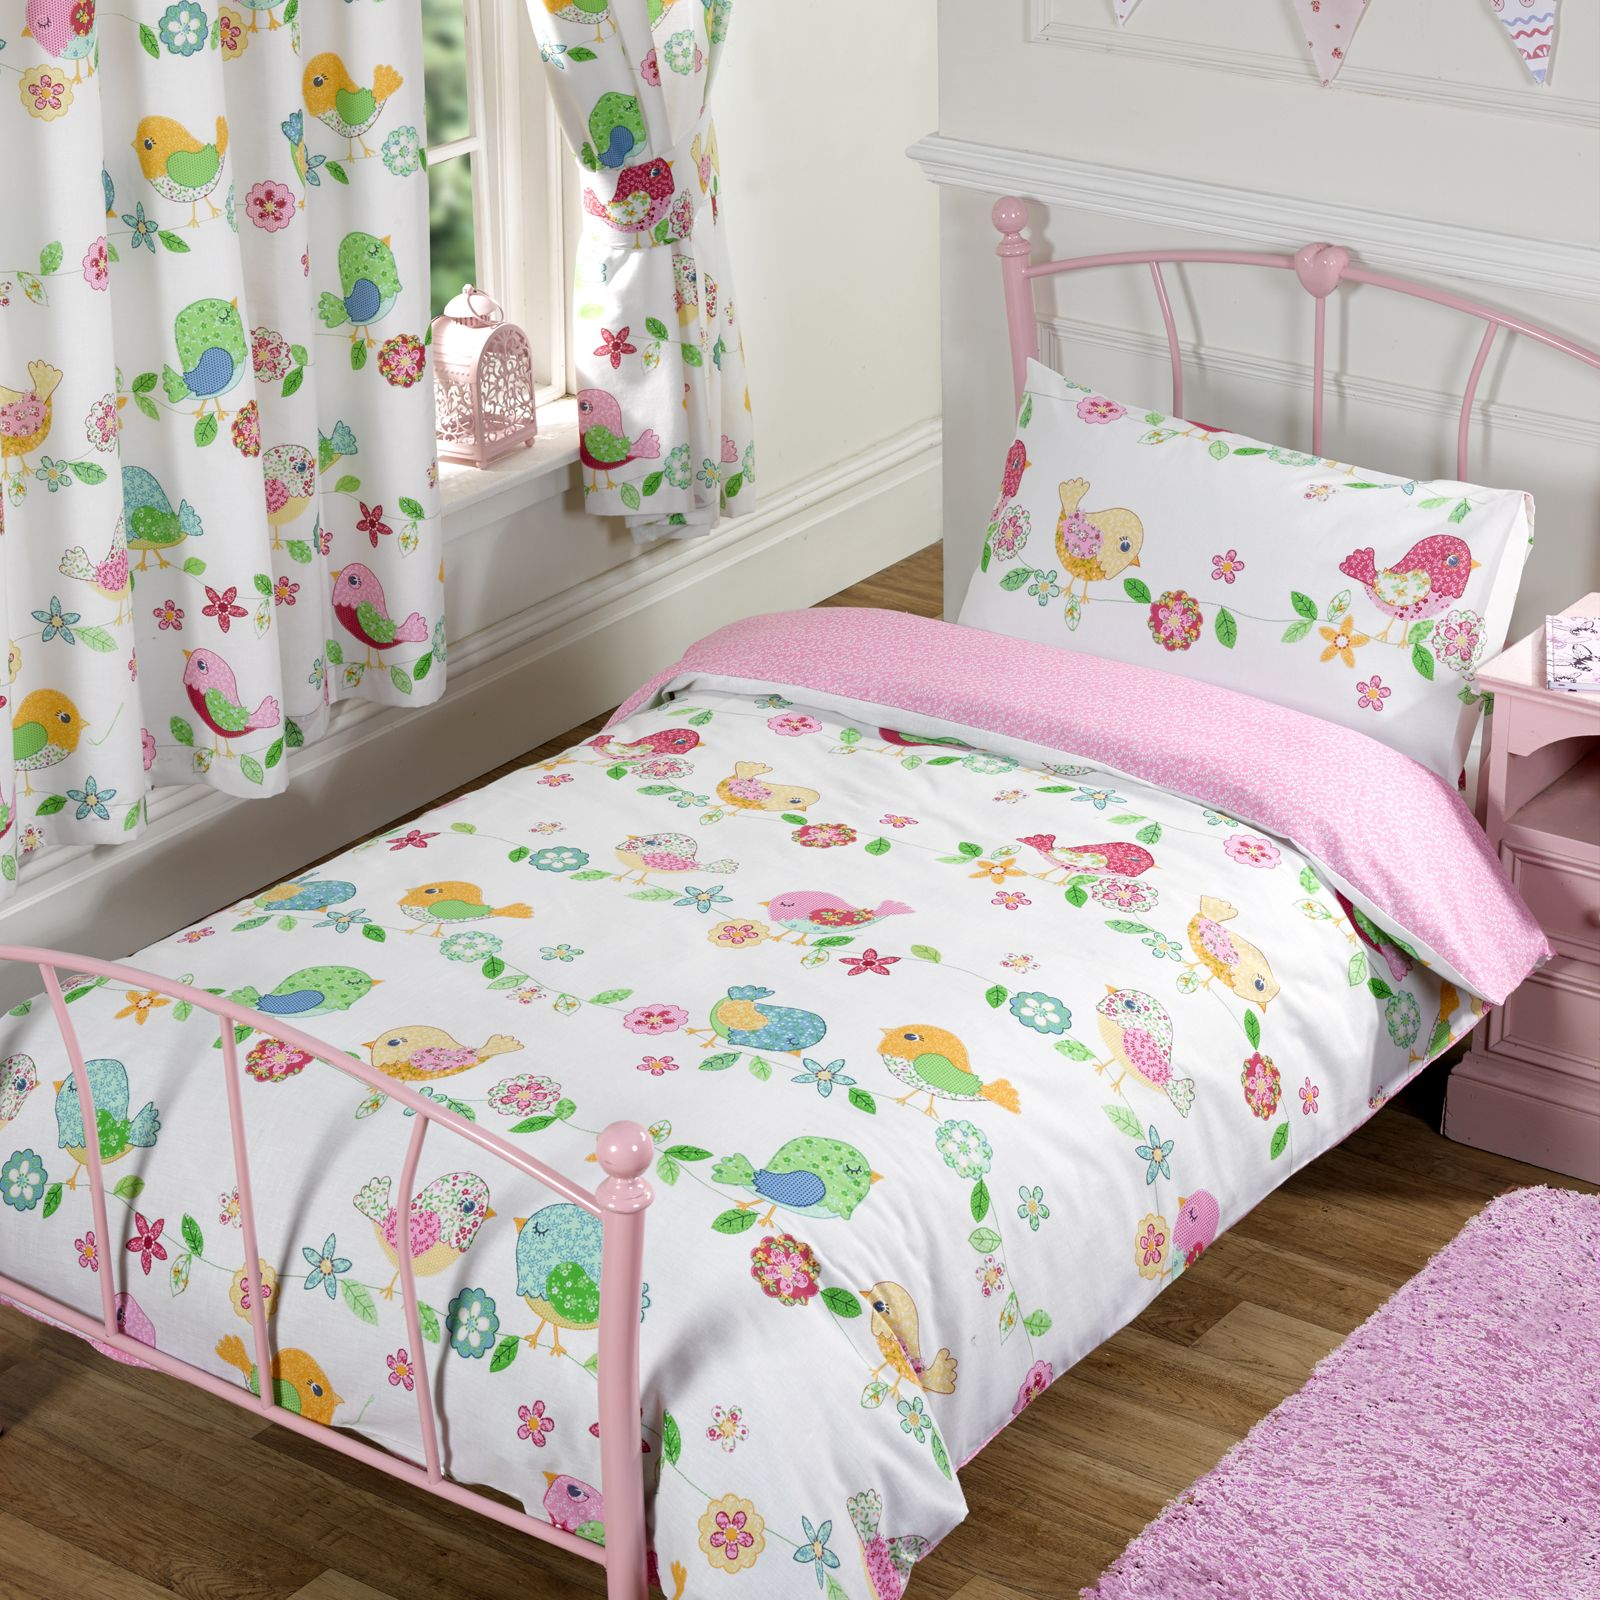 Girls Single Duvet Cover Sets Unicorns Butterflies